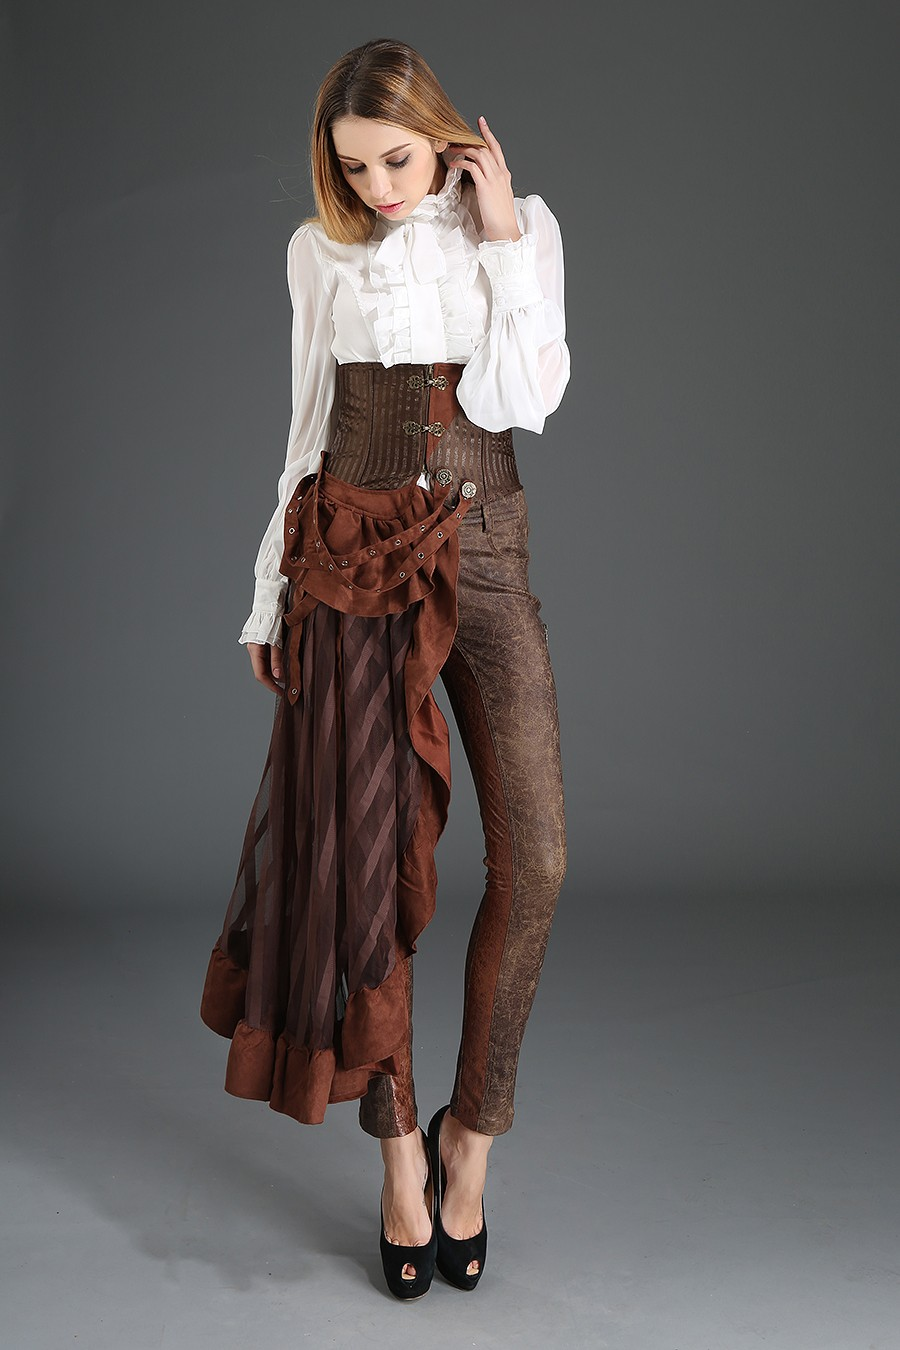 839c235537 STEAMPUNK STORY S030016B BRUN Brown lined underbust corset with  asymmetrical pan skirt steampunk strap